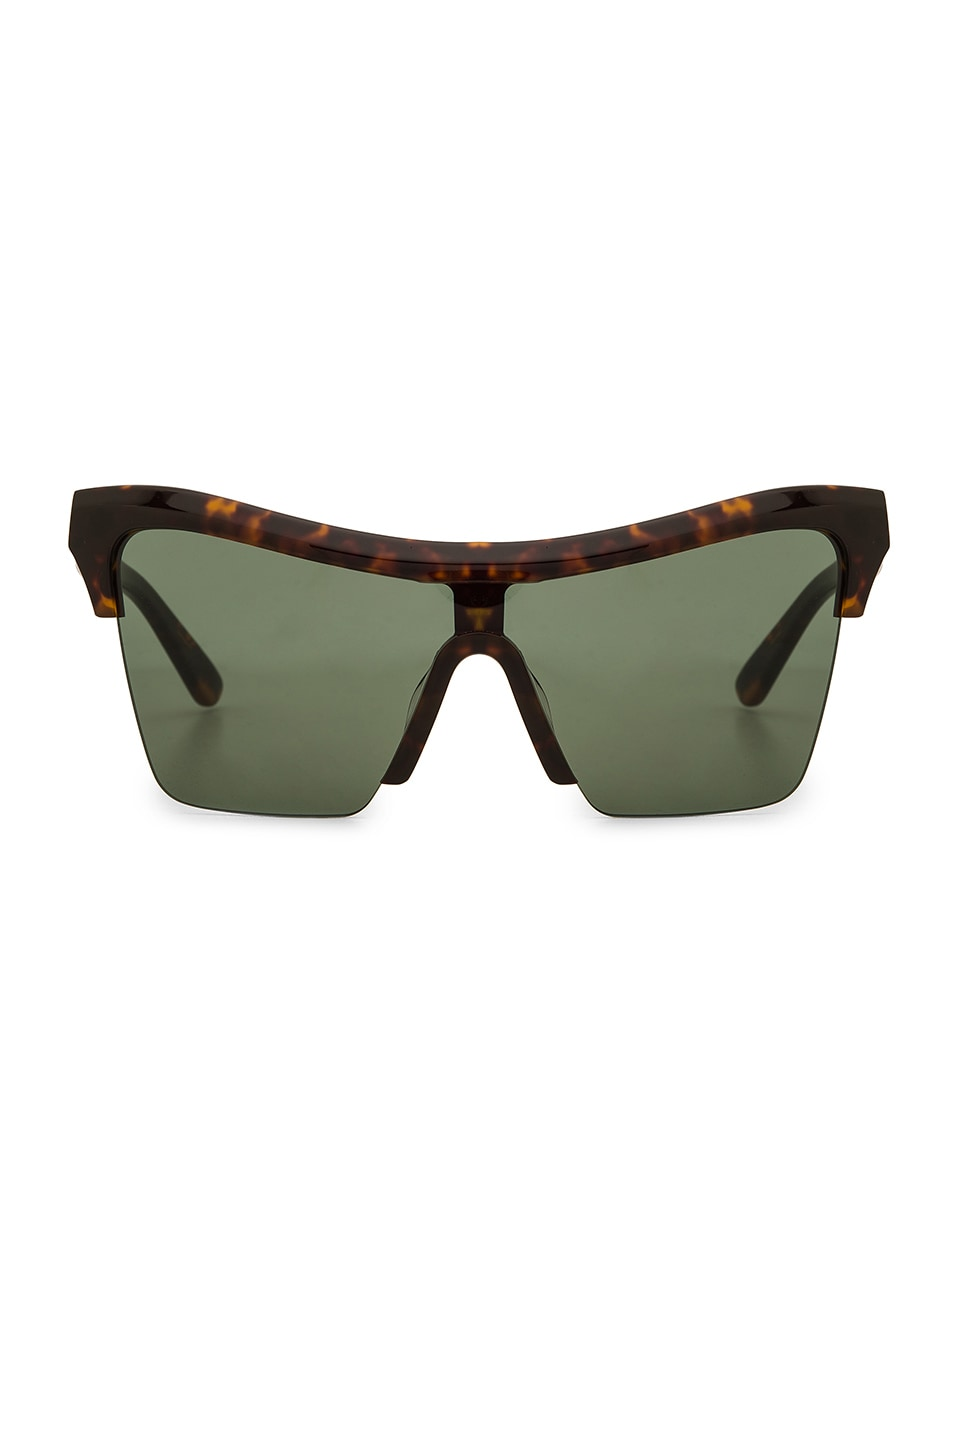 Hadid Eyewear Passport Control in Tortoise